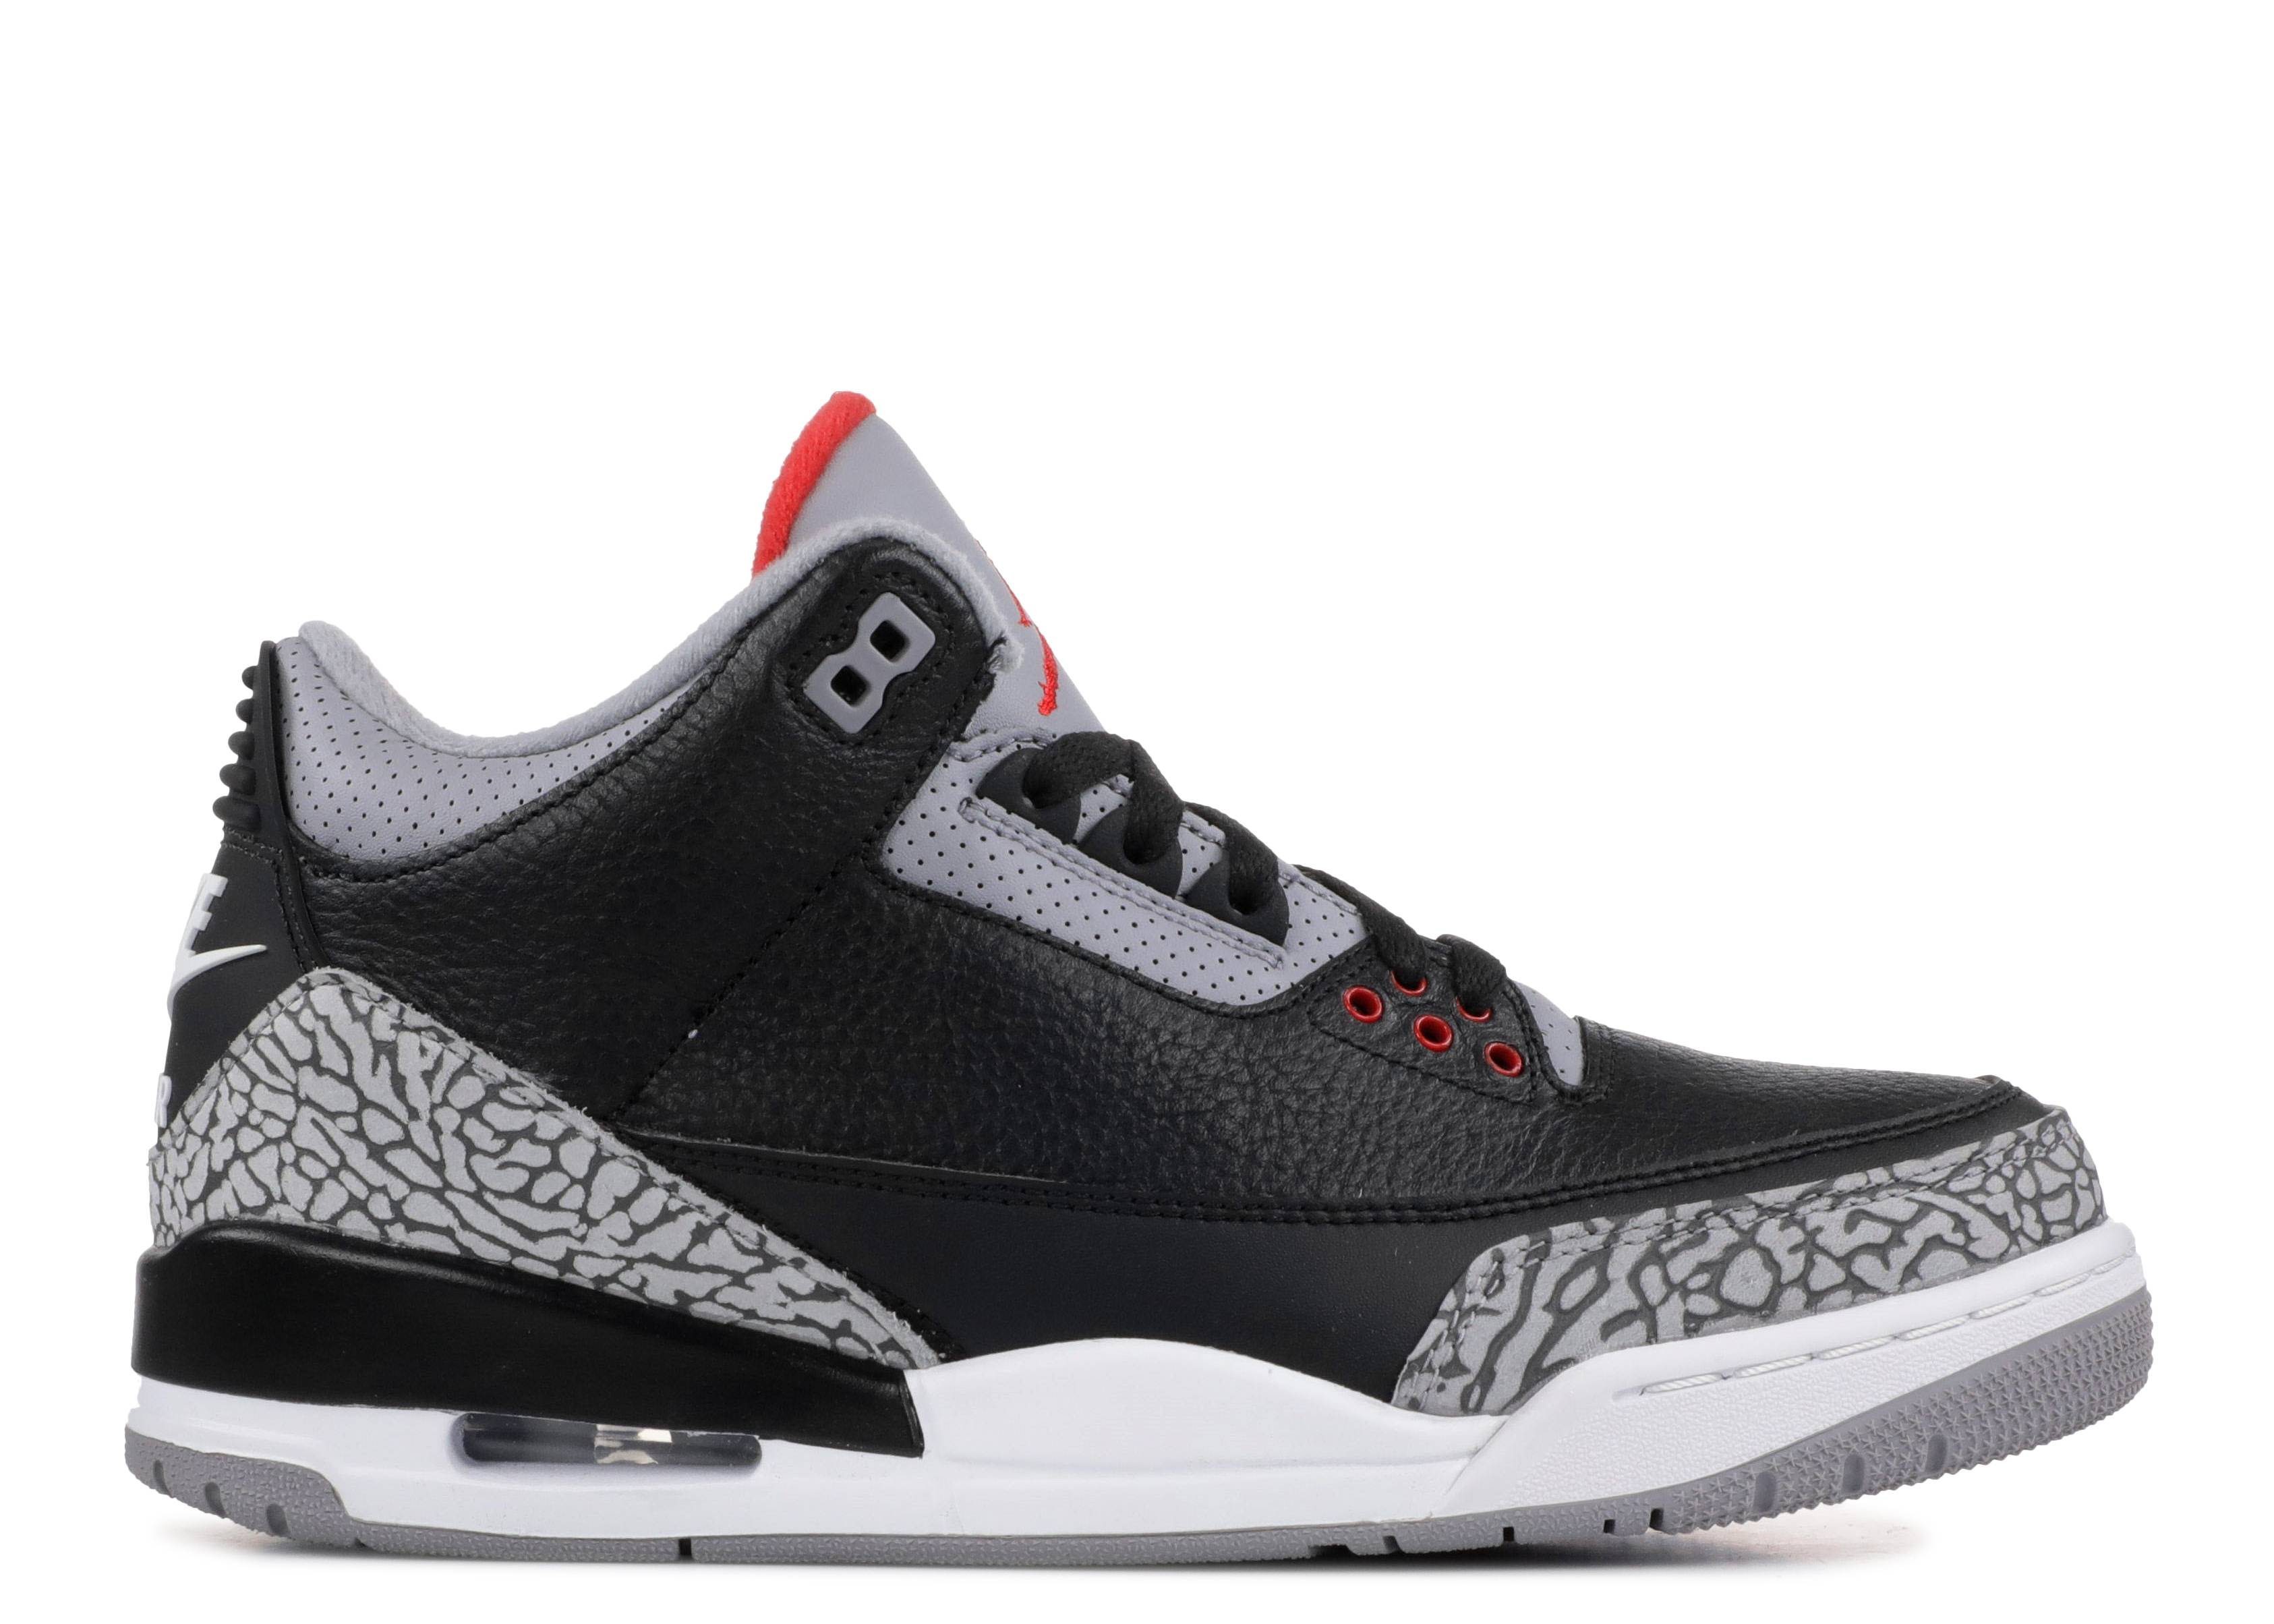 40e98a11da8e Air Jordan 3 (III) Shoes - Nike